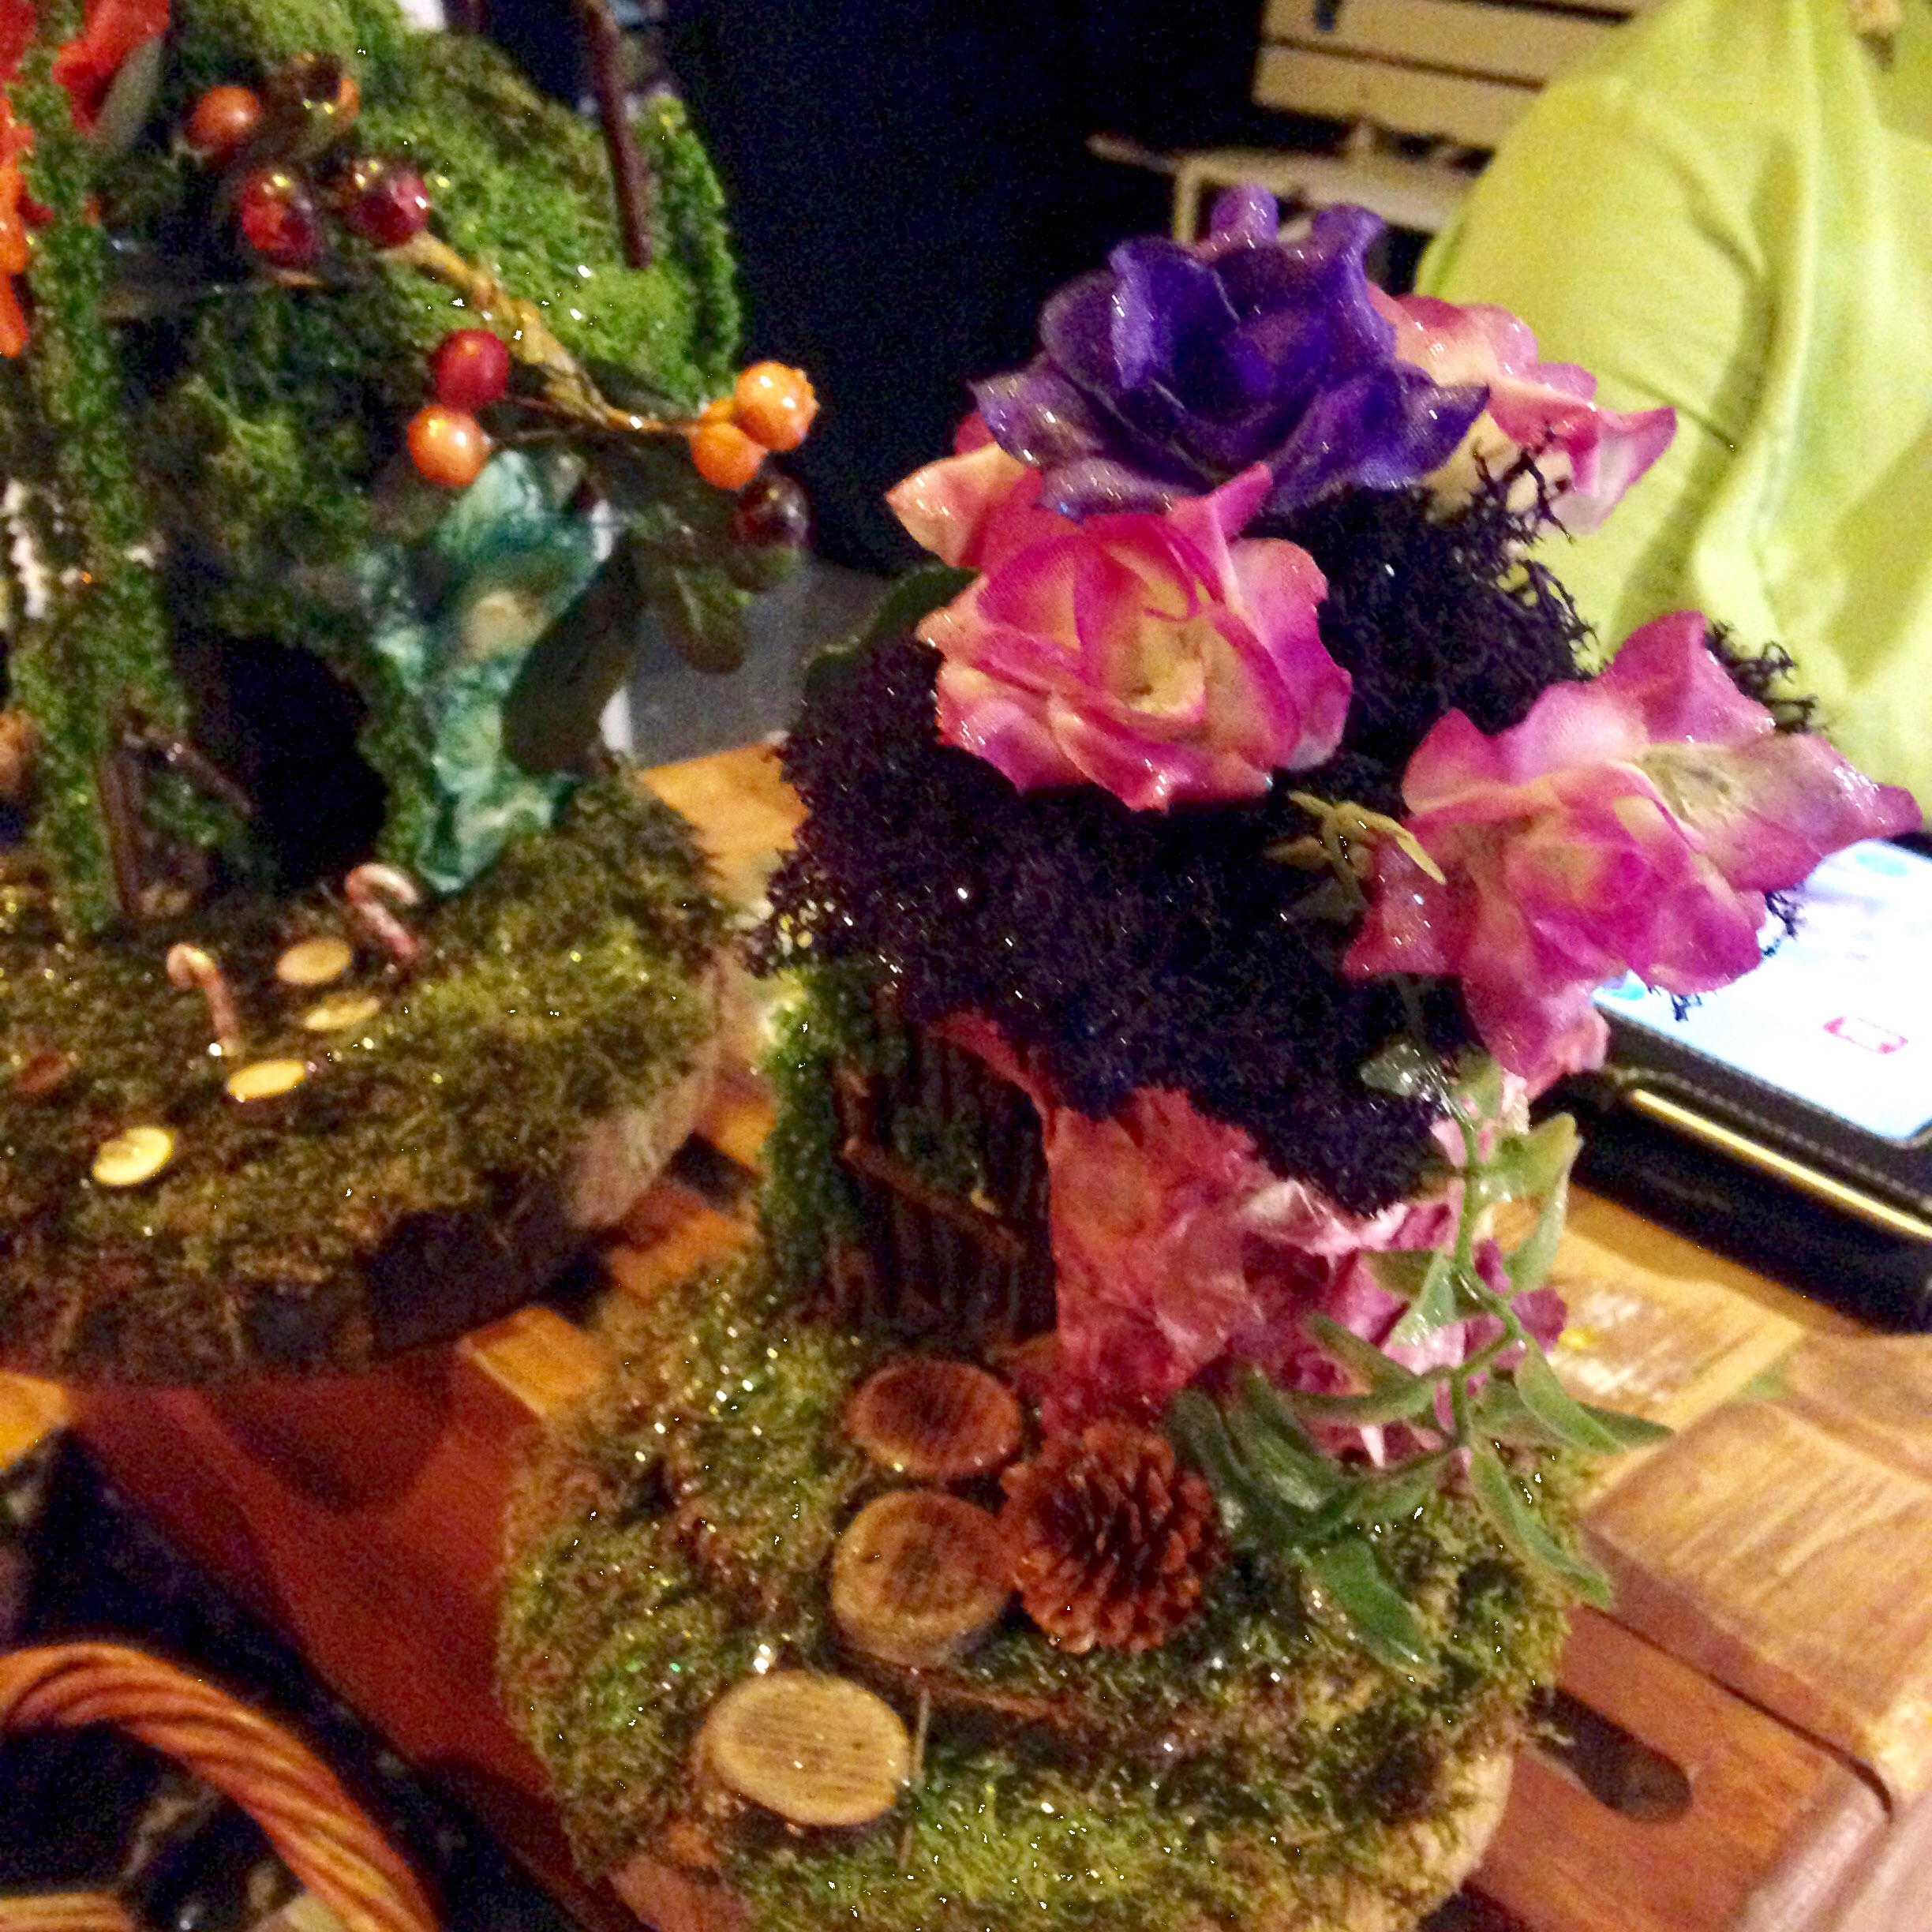 Decorate your own fairy house